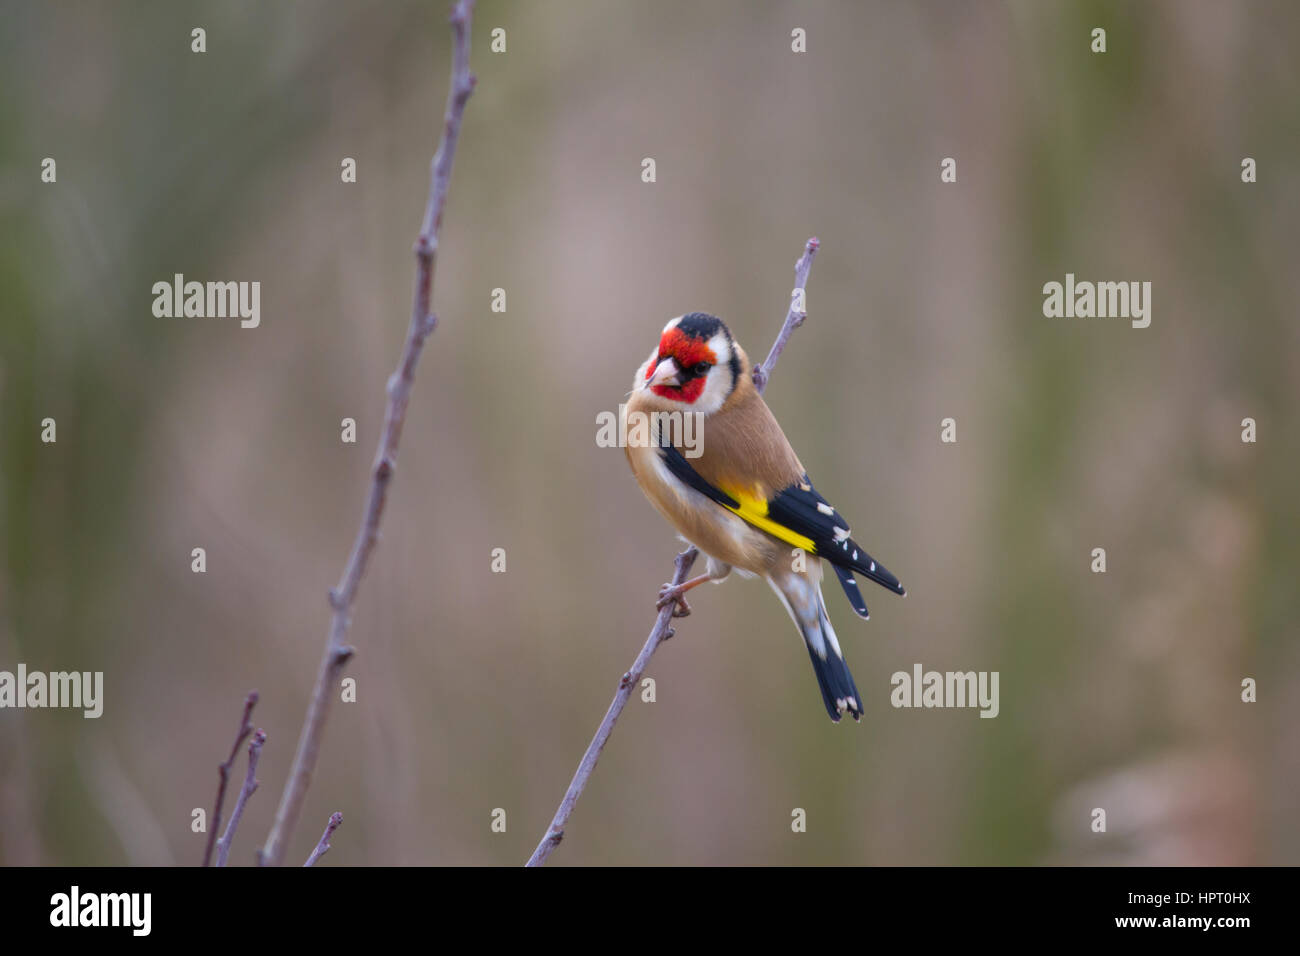 European goldfinch or goldfinch (Carduelis carduelis) - Stock Image